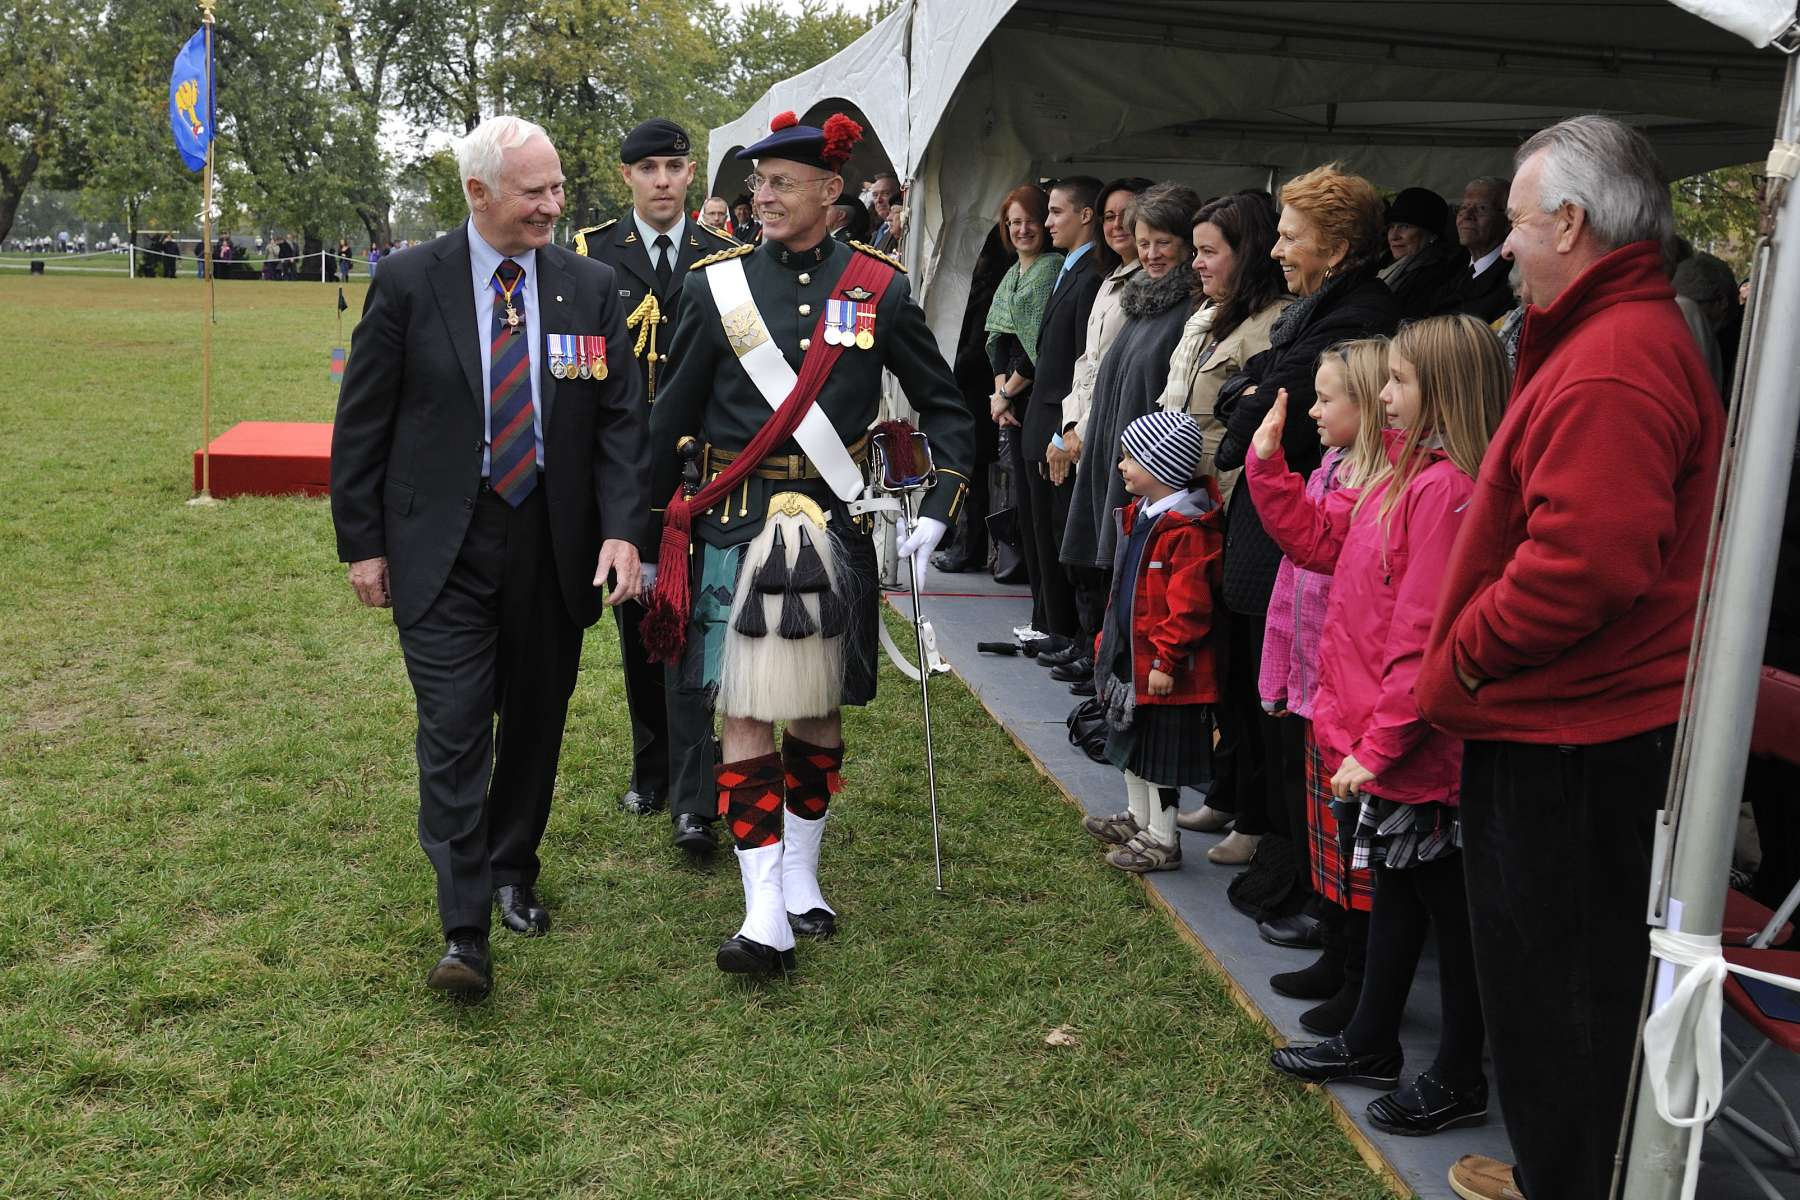 His Excellency with the Honorary Colonel of the Black Watch, Colonel Dan O'Connor.